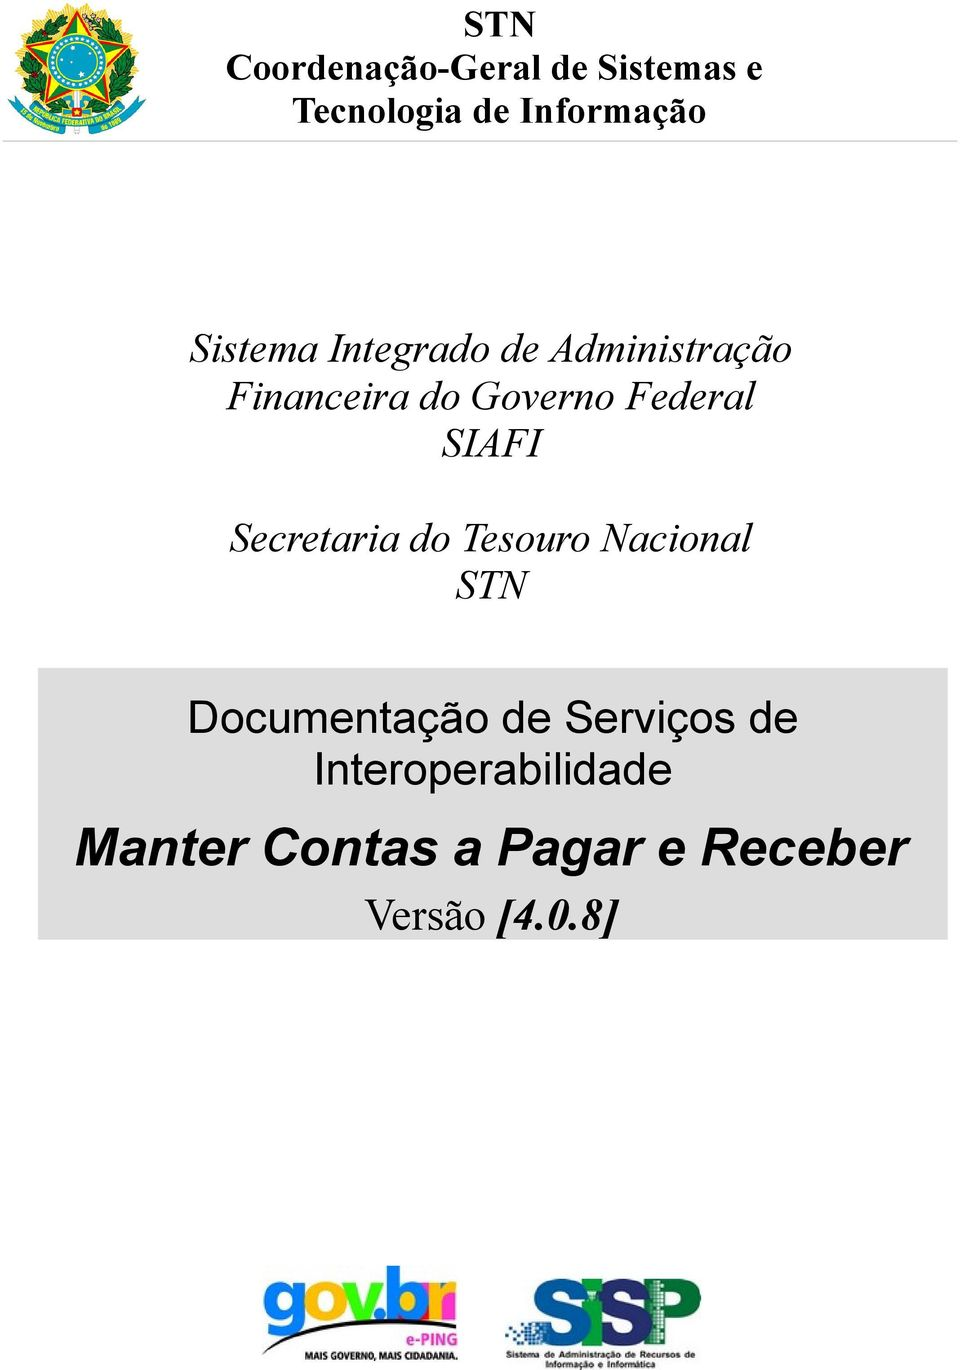 SIAFI Secretaria do Tesouro Nacional STN Documentação de